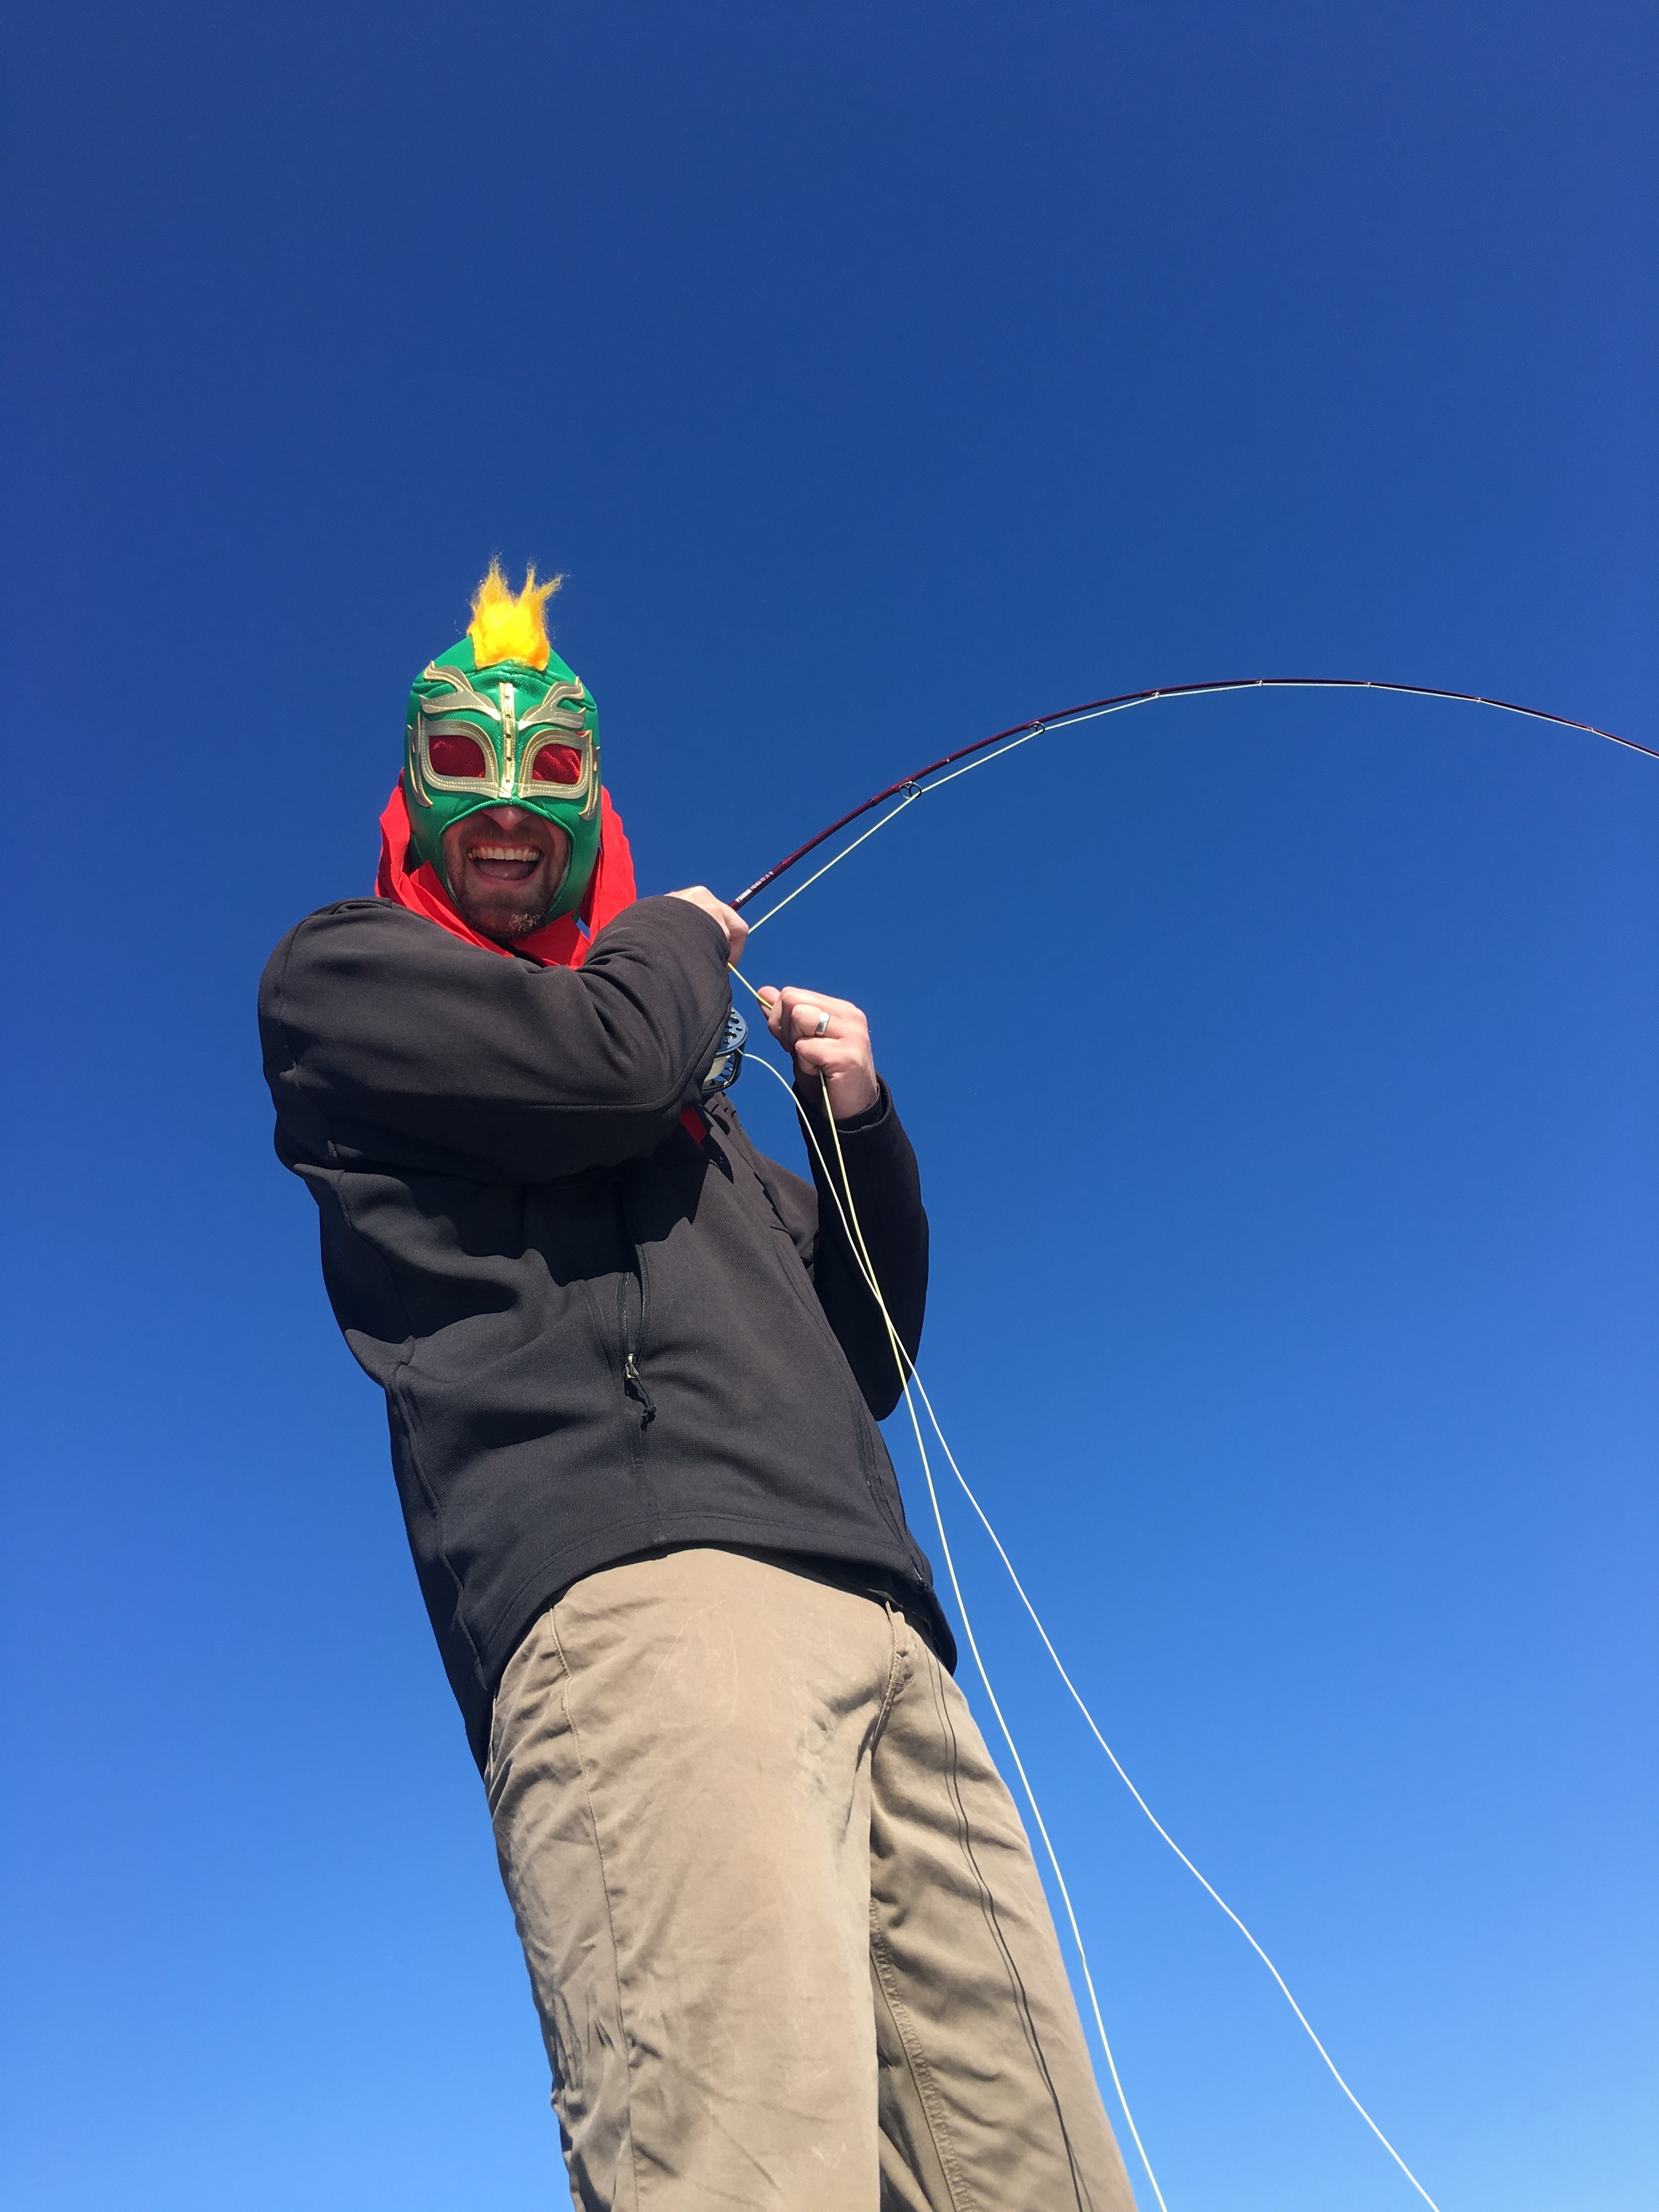 When the fishing is good, things can get a little weird.